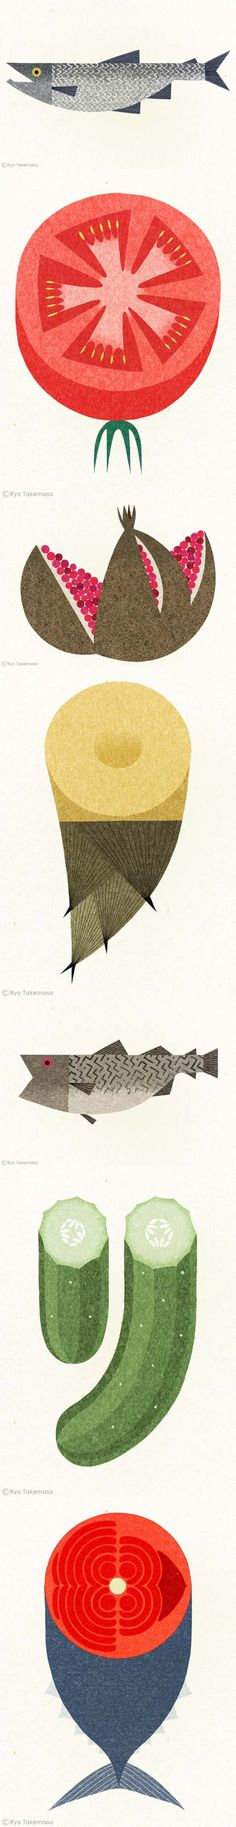 Ryo Takemasa... might be useful when thinking about logo? Like the image of the fish at the bottom.